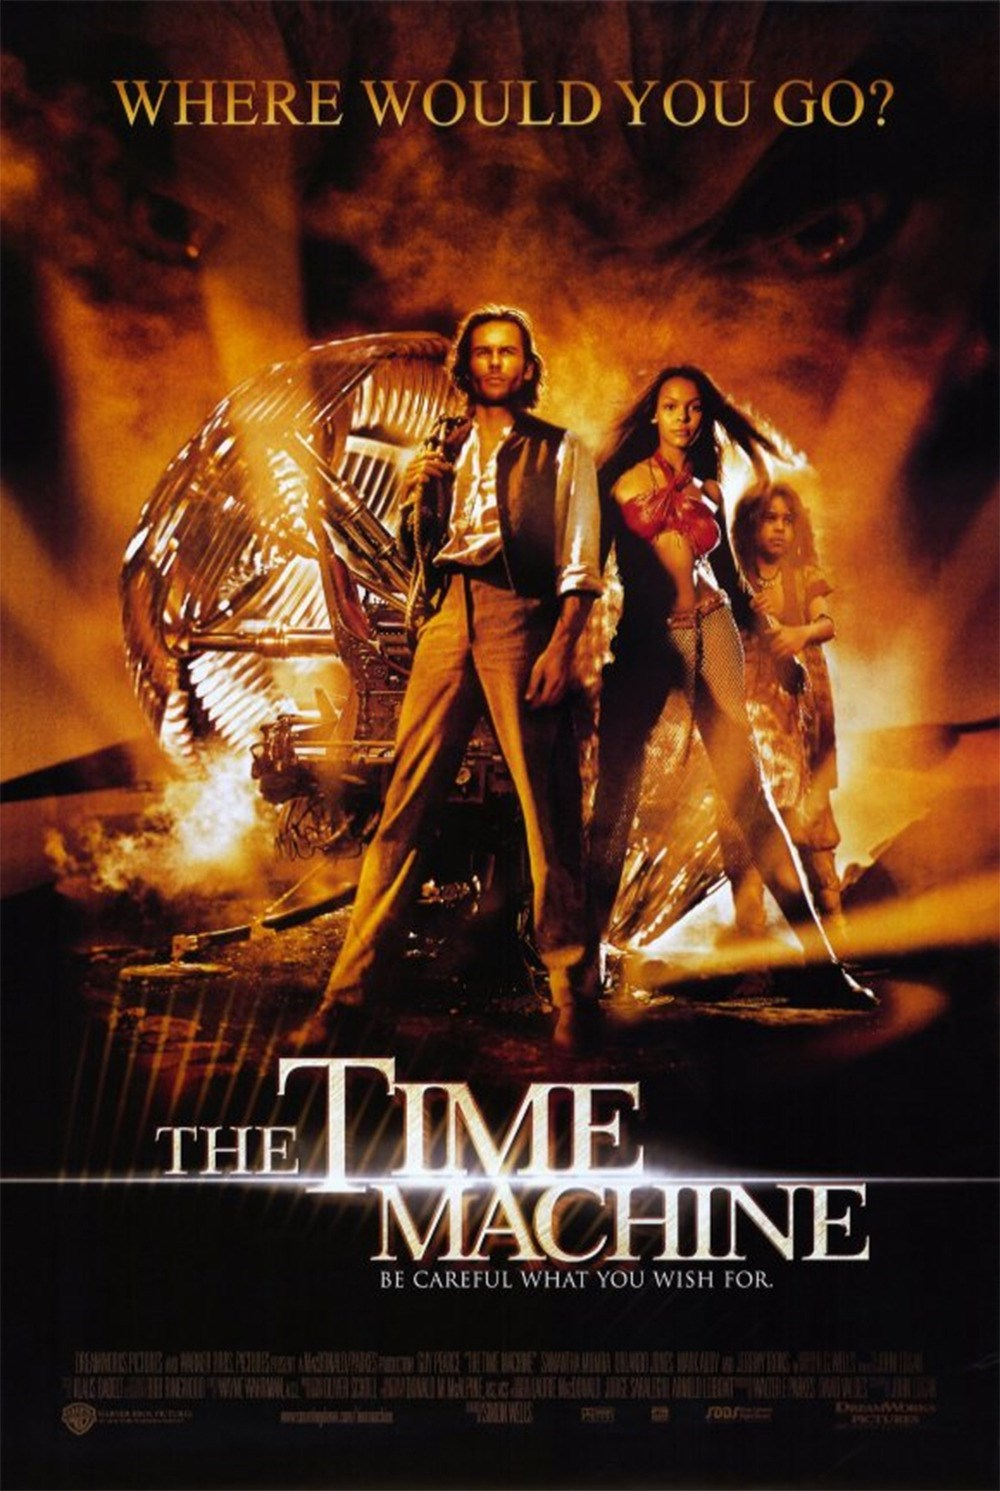 The Time Machine (2002)